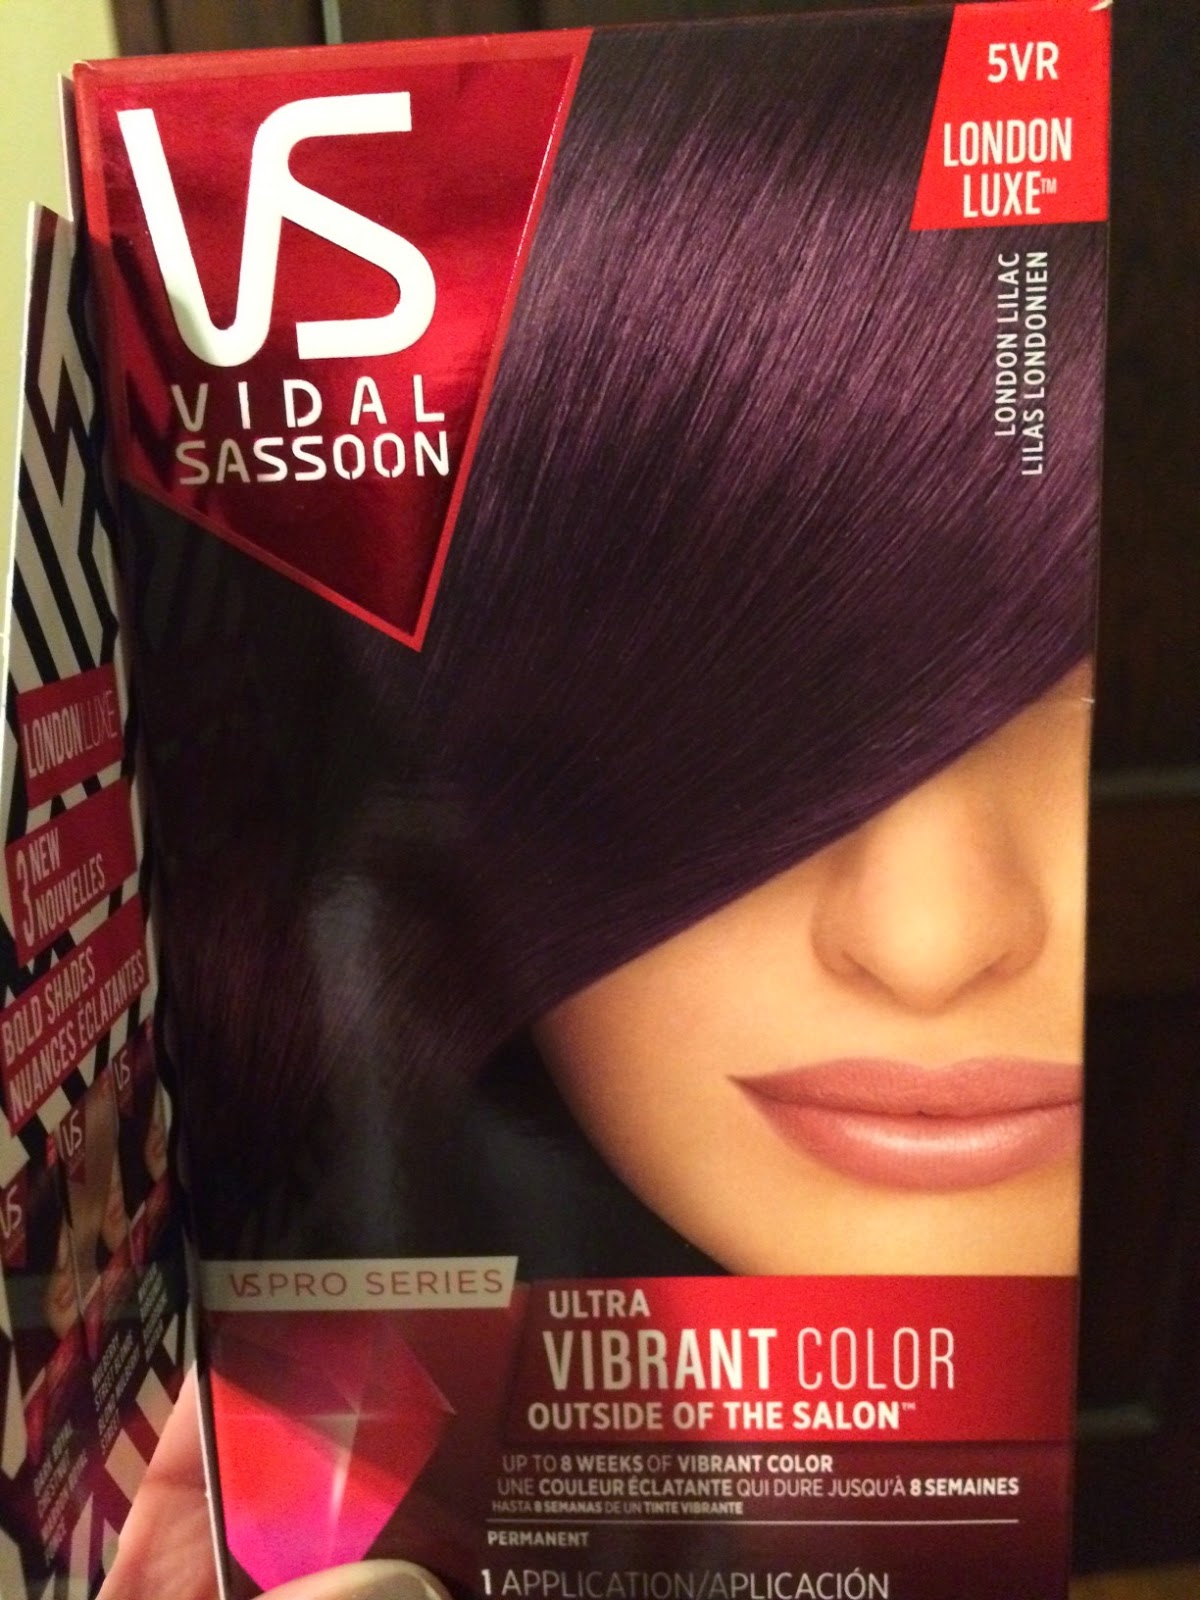 Pangies Lifestyle Vidal Sassoon London Lilac